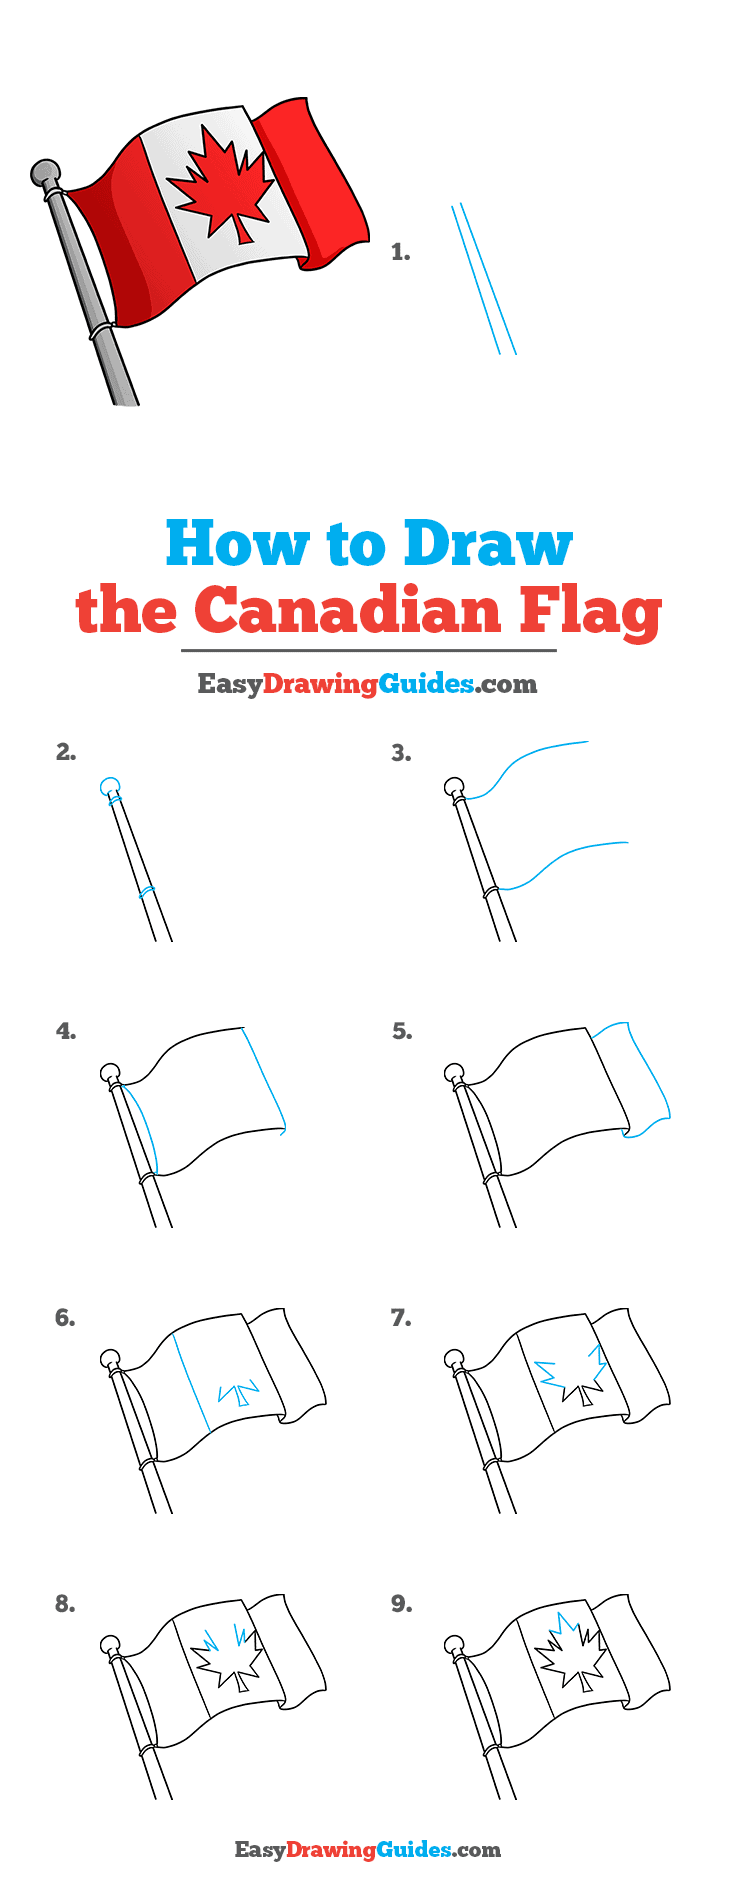 How to Draw the Canadian Flag Step by Step Tutorial Image